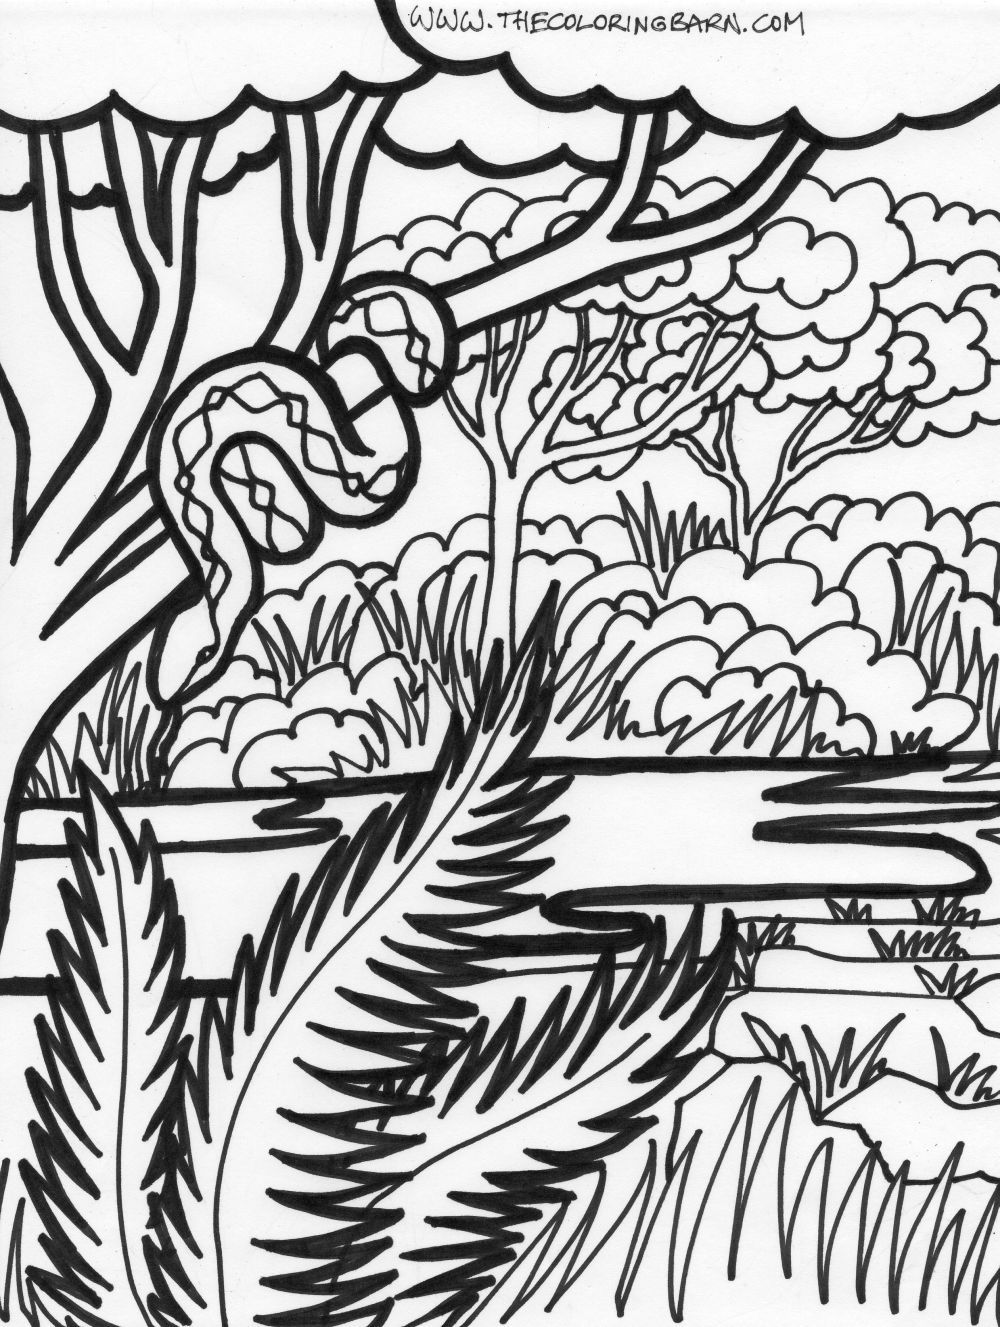 Jungle Coloring Sheets Coloring Page Jungle Scene Coloring Page Jungle Snake Coloring Page Jungle Coloring Pages Animal Coloring Pages Snake Coloring Pages